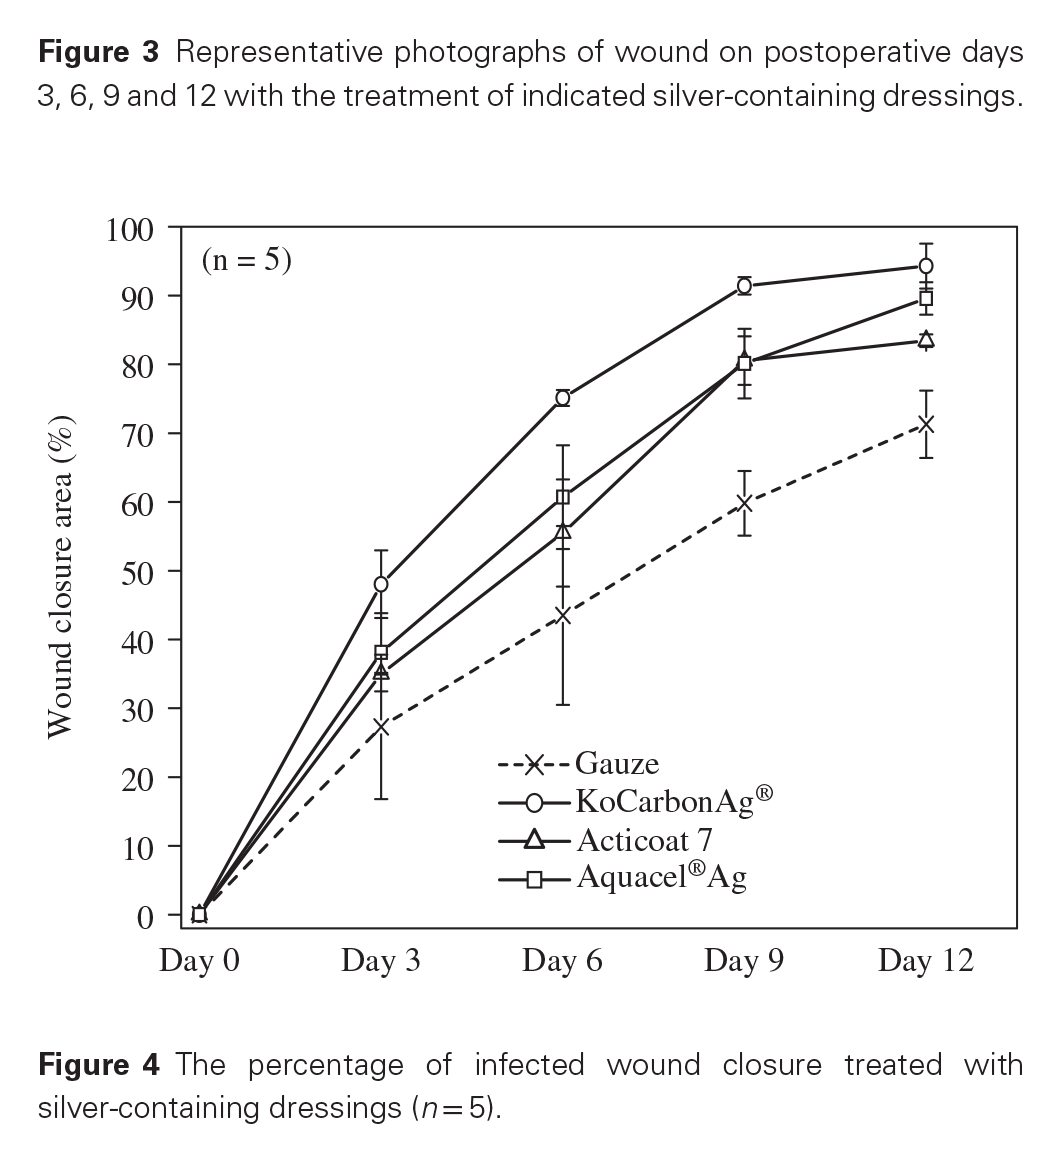 kocarbon ag Silver-based_wound_dressings_reduce_bacterial_burden_and_promote_wound_healing-5_graph.png